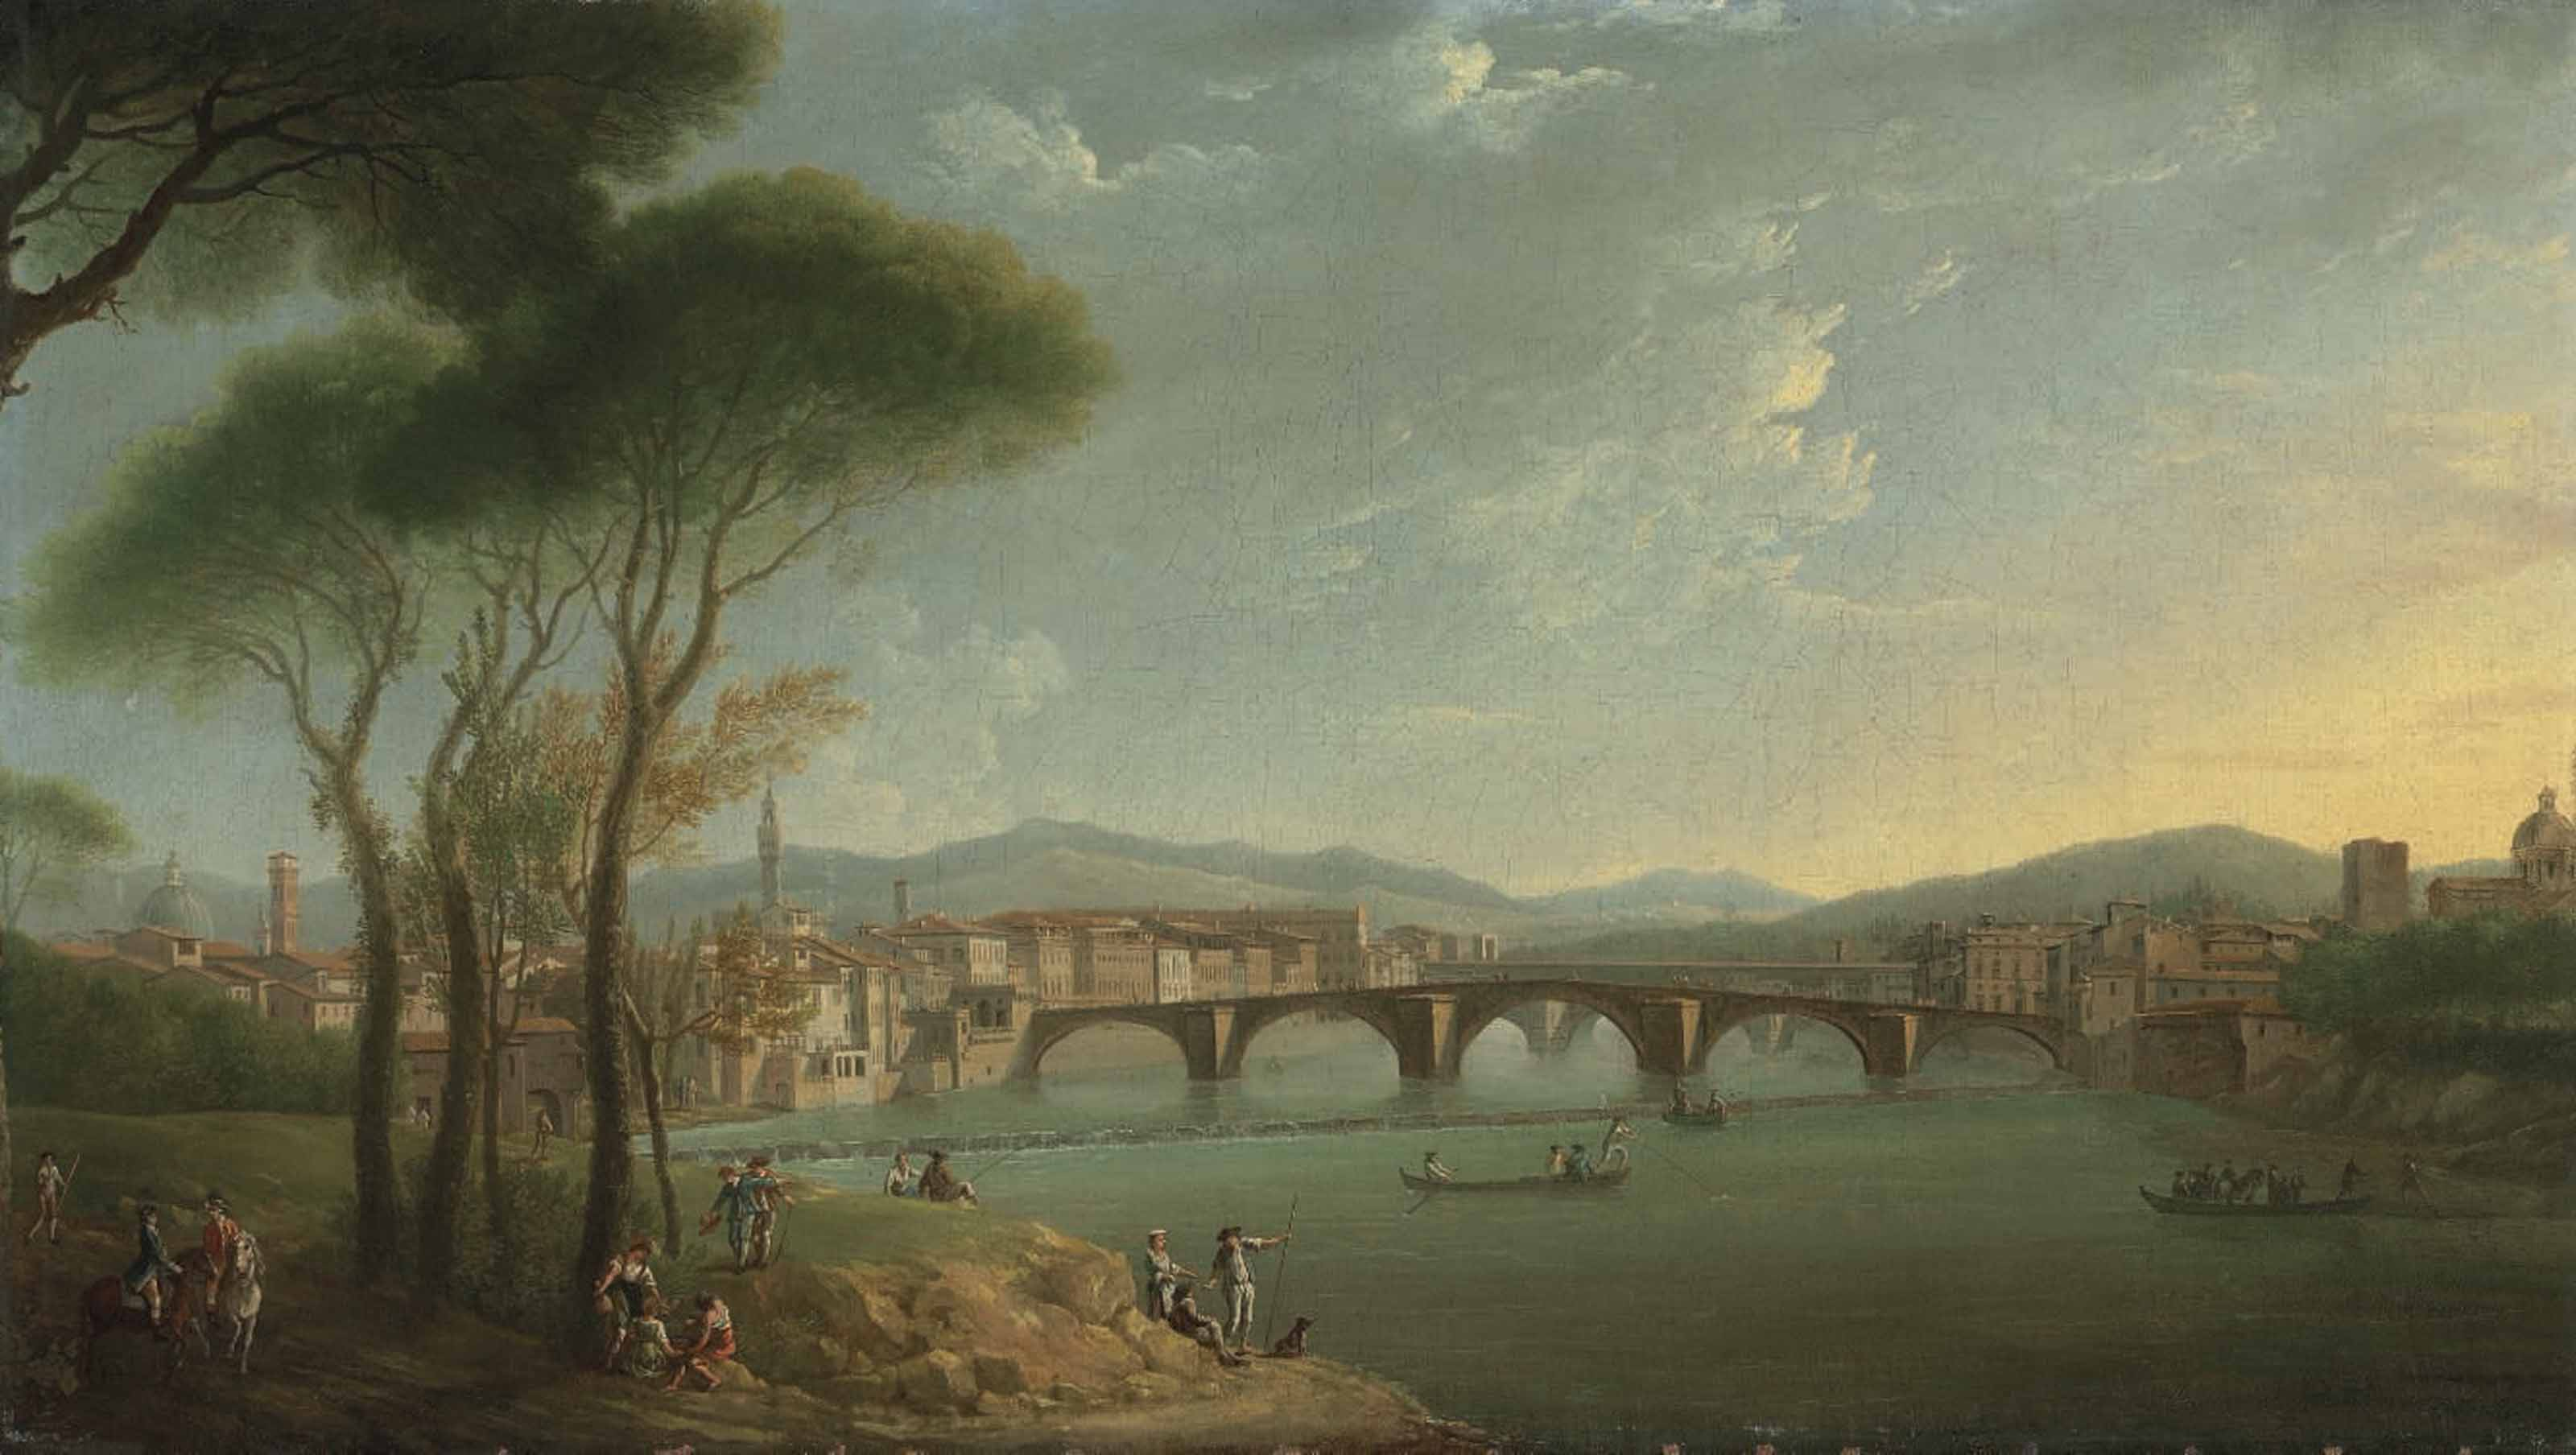 A view of the Arno, Florence, from the Cascine Gardens, with figures fishing and resting on the rocks in the foreground, the Ponte alla Carità and the Ponte Vecchio beyond